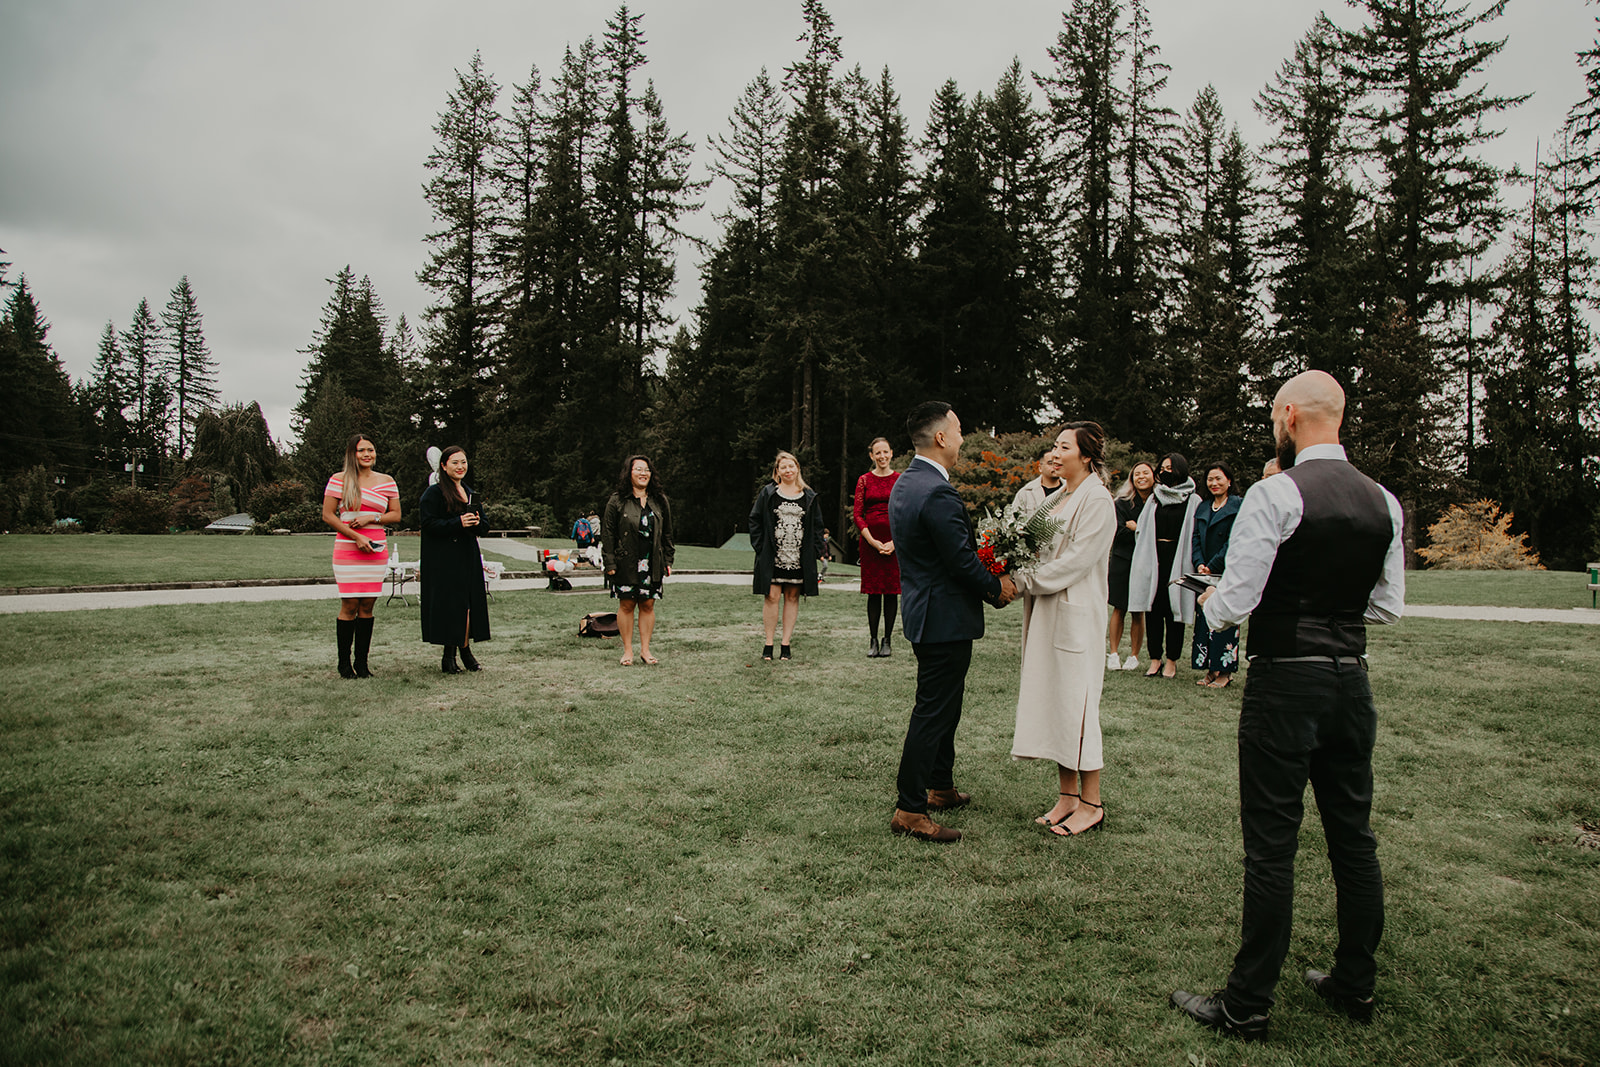 Vancouver micro wedding with friends and family and Young Hip & Married officiant